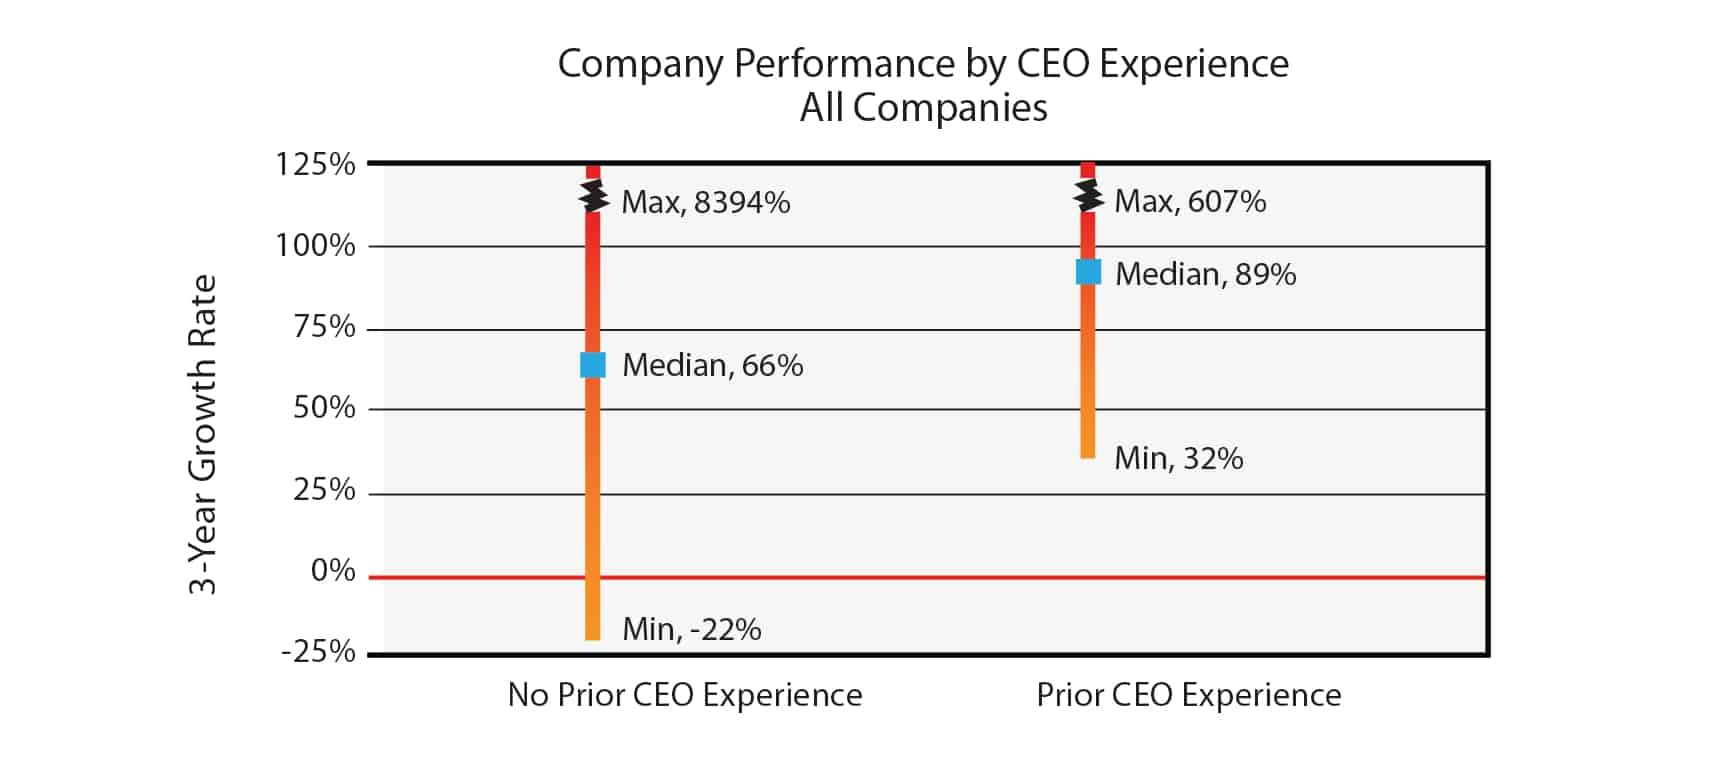 Company performance by CEO experience